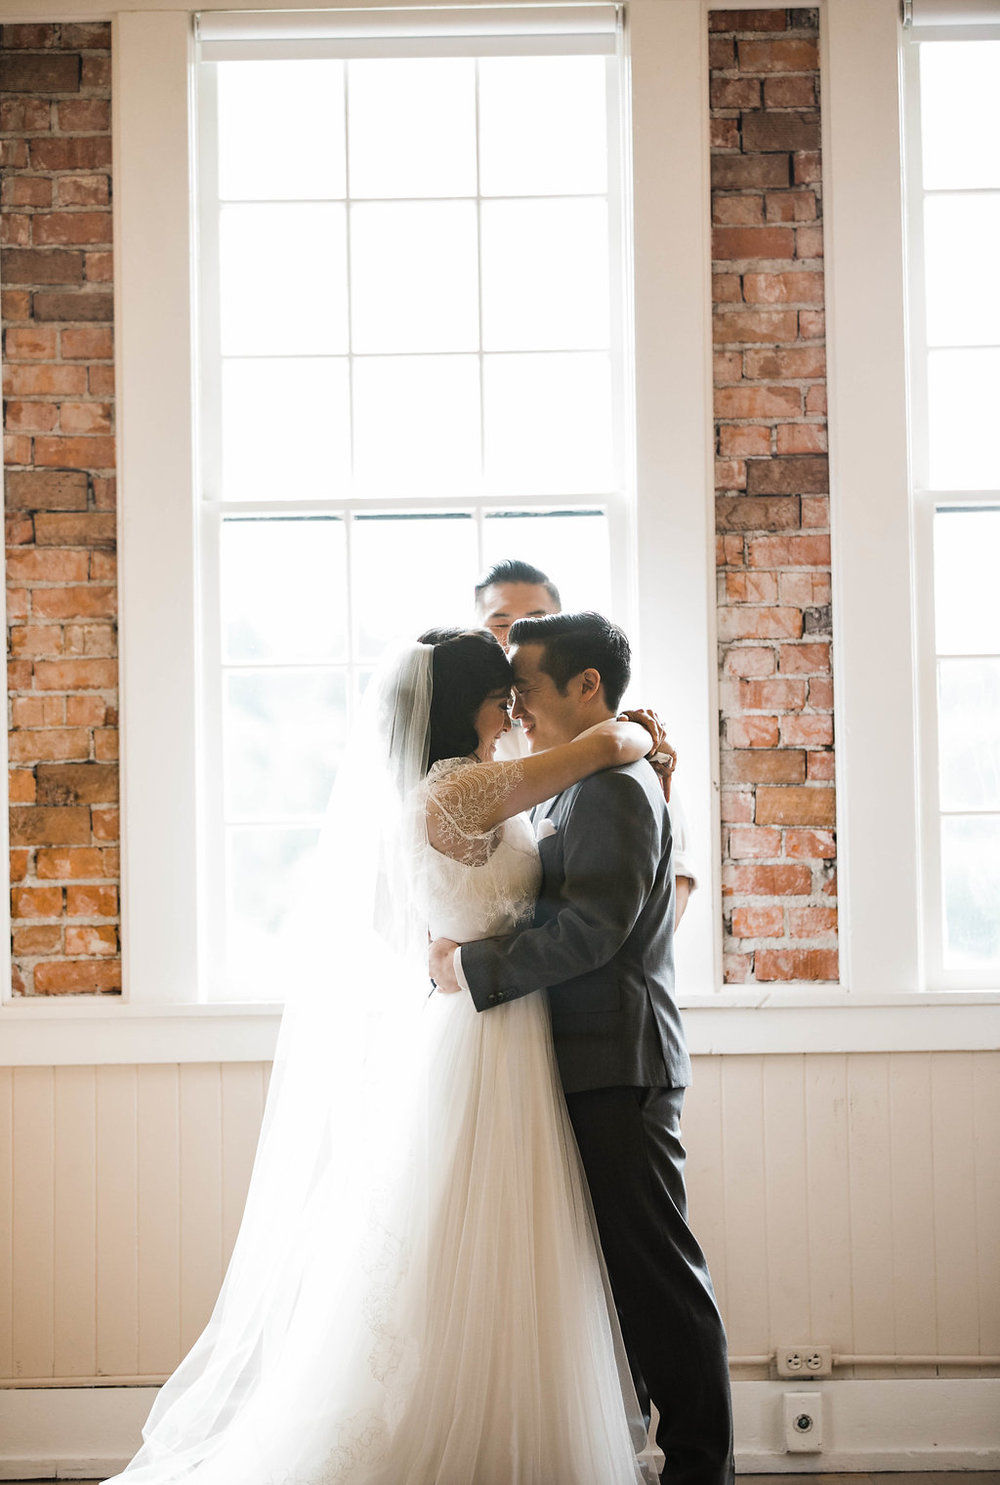 Sarah+Sean_Hollywood_Schoolhouse_wedding_Adina_Preston_Weddings_577.JPG